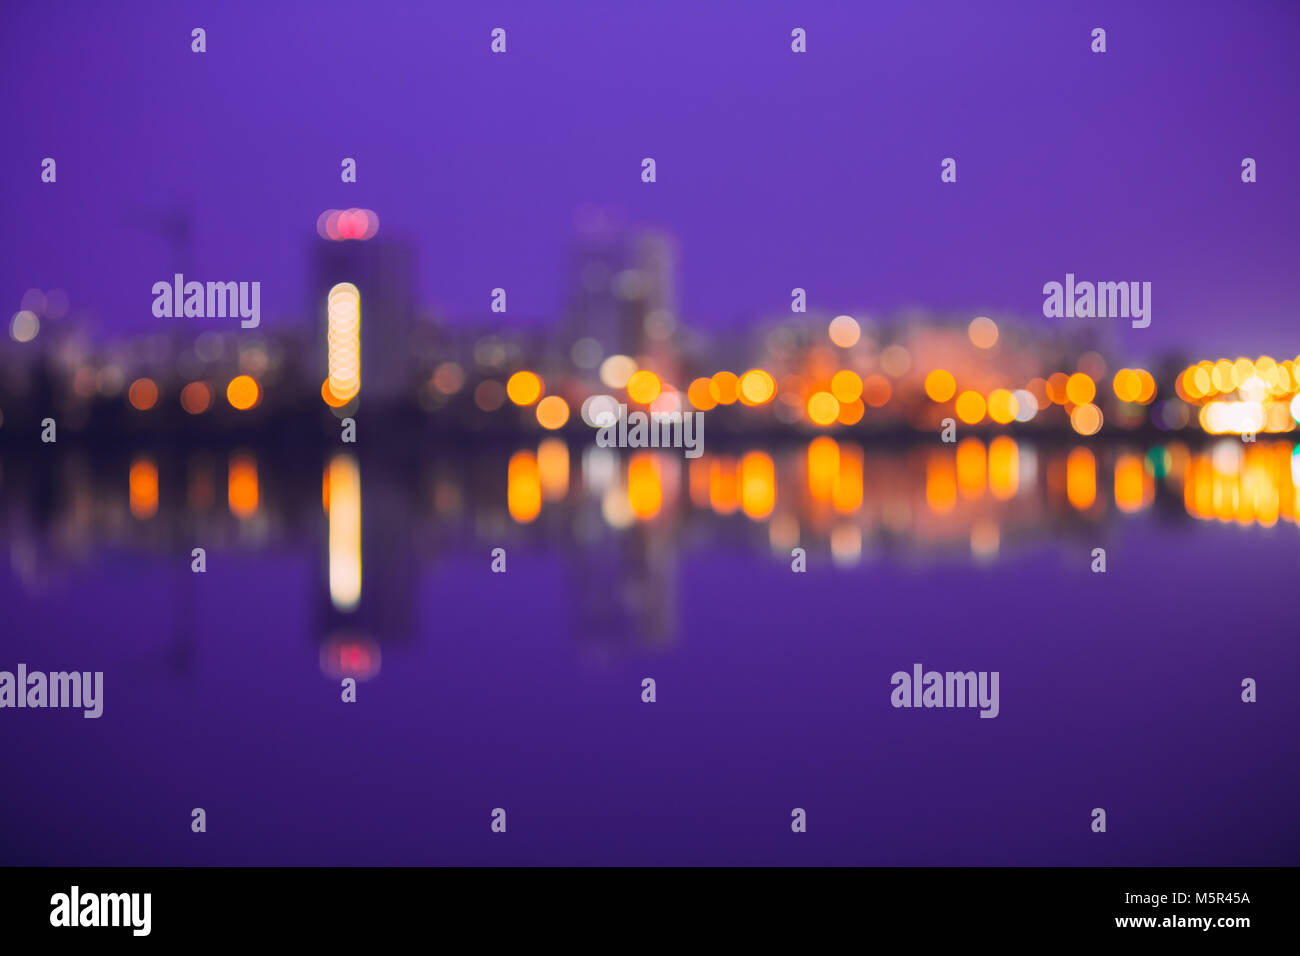 Abstract Blurred Bokeh Architectural Urban Backdrop With Reflections In Water. Real Blurred Colorful Bokeh Background - Stock Image